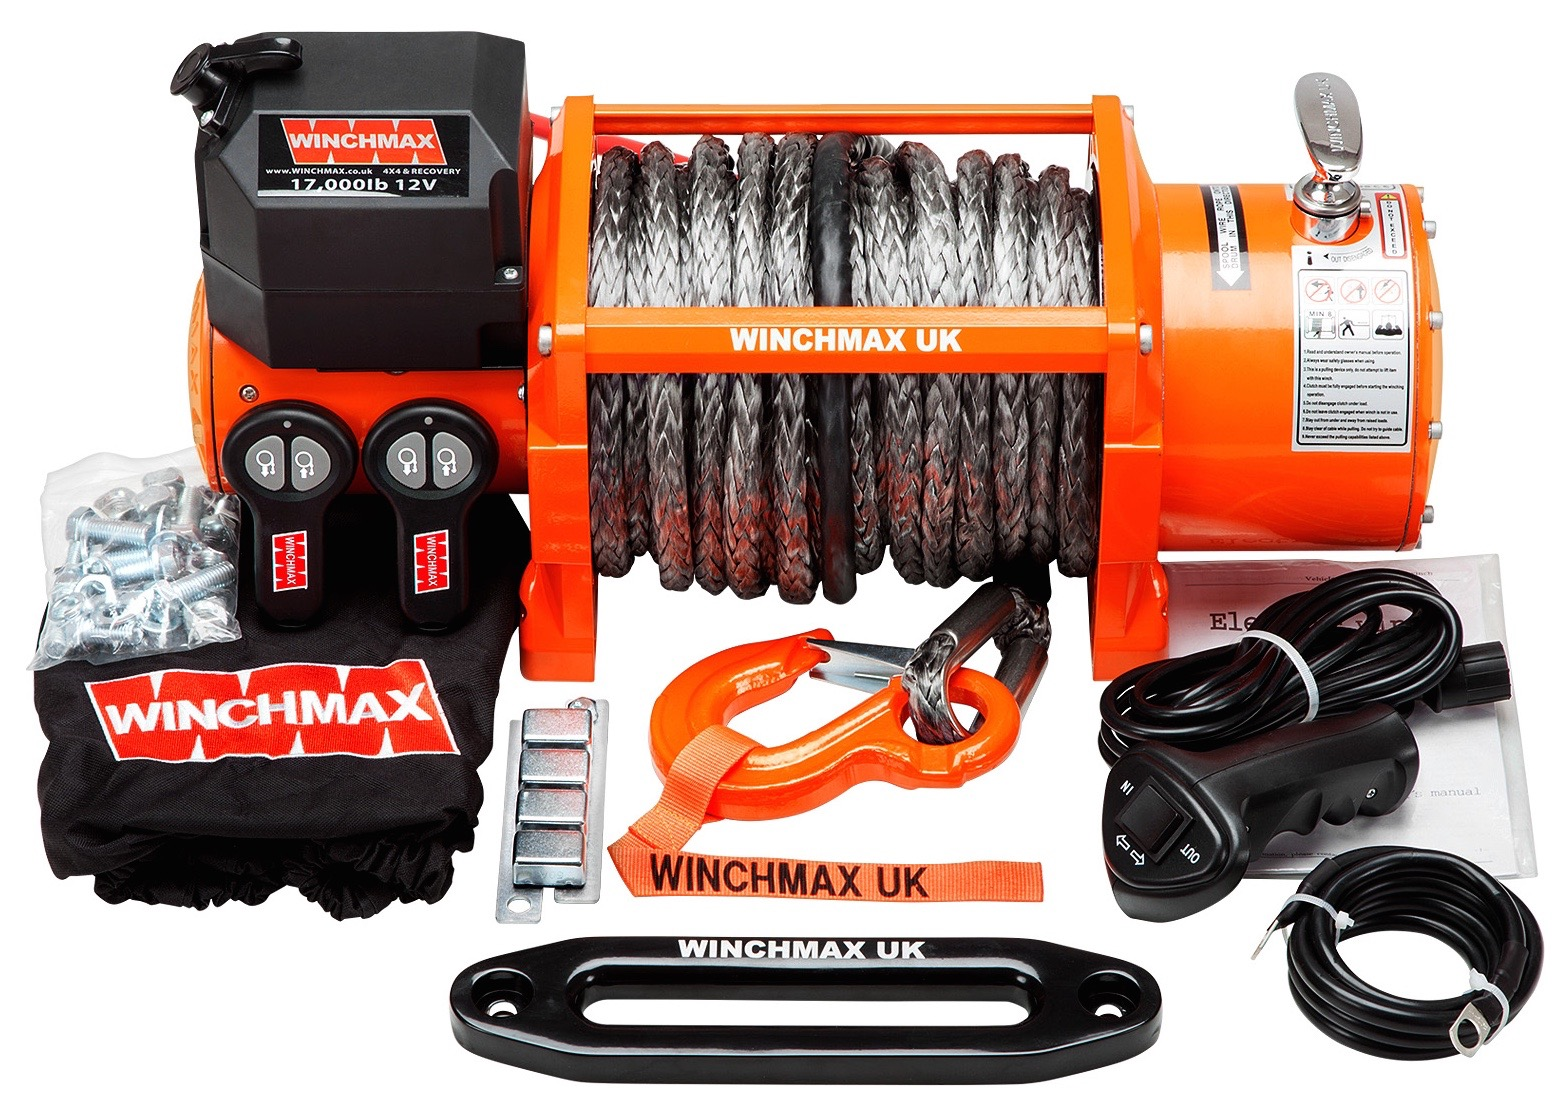 product_view.php?pid=WINCHMAX 17000LB 24V ELECTRIC WINCH DYNEEMA ROPE WITH WIRELESS REMOTES